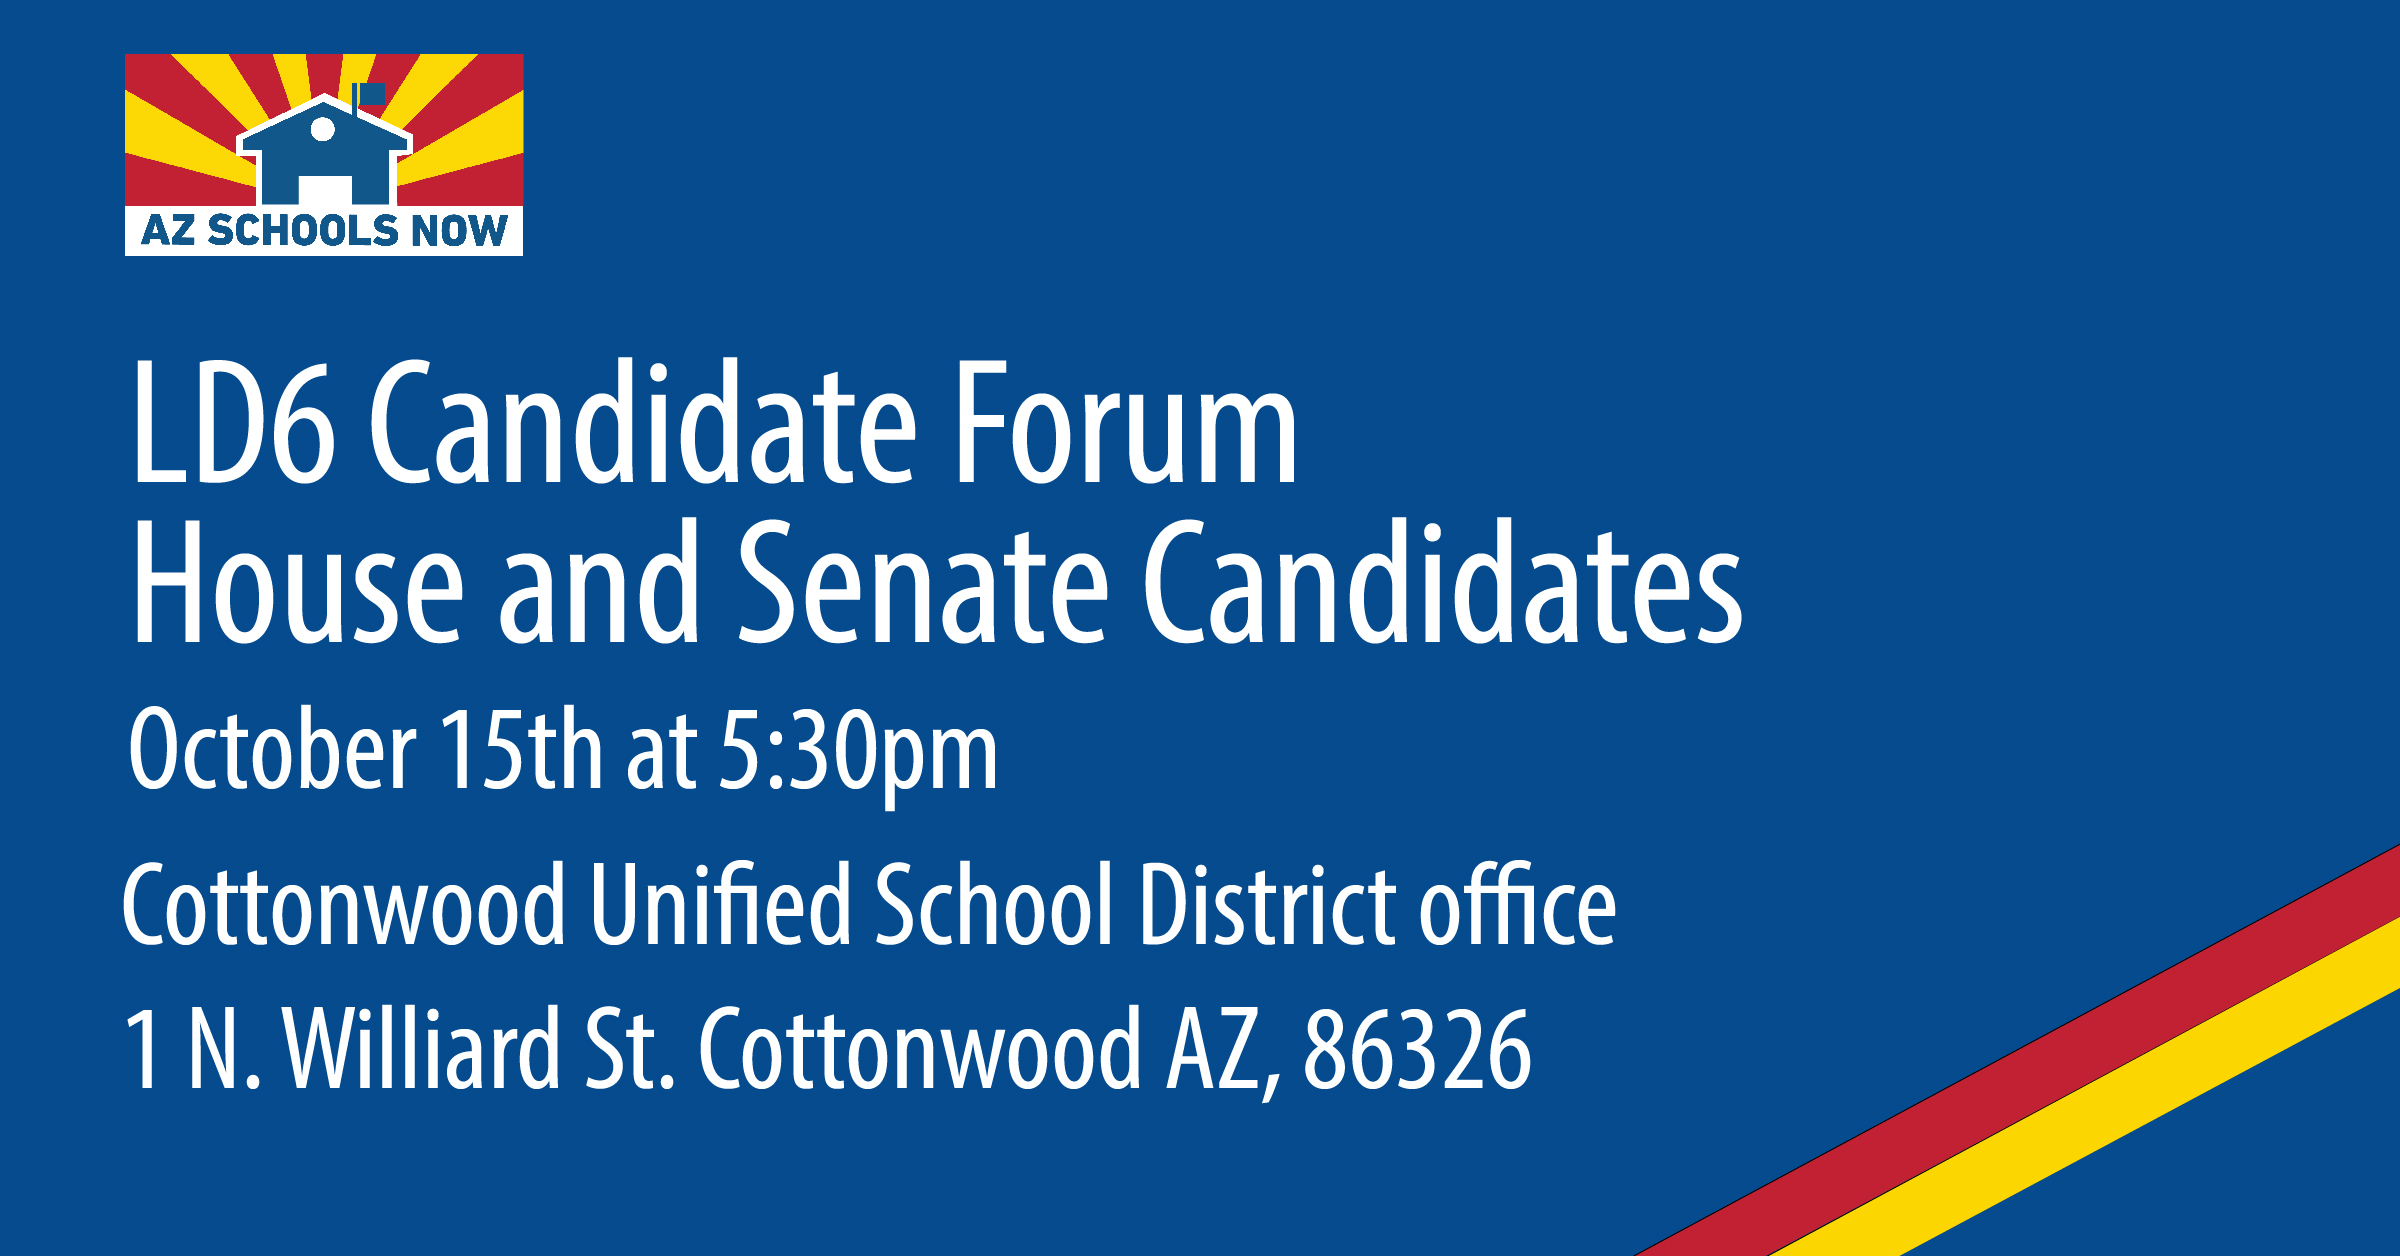 "Invitation featuring information on candidate forum for LD 6 House and Senate Candidates. ""October 15th at 5:30pm, Cottonwood Unified School District Office, 1 N. Williard St. Cottonwood AZ 86326"""